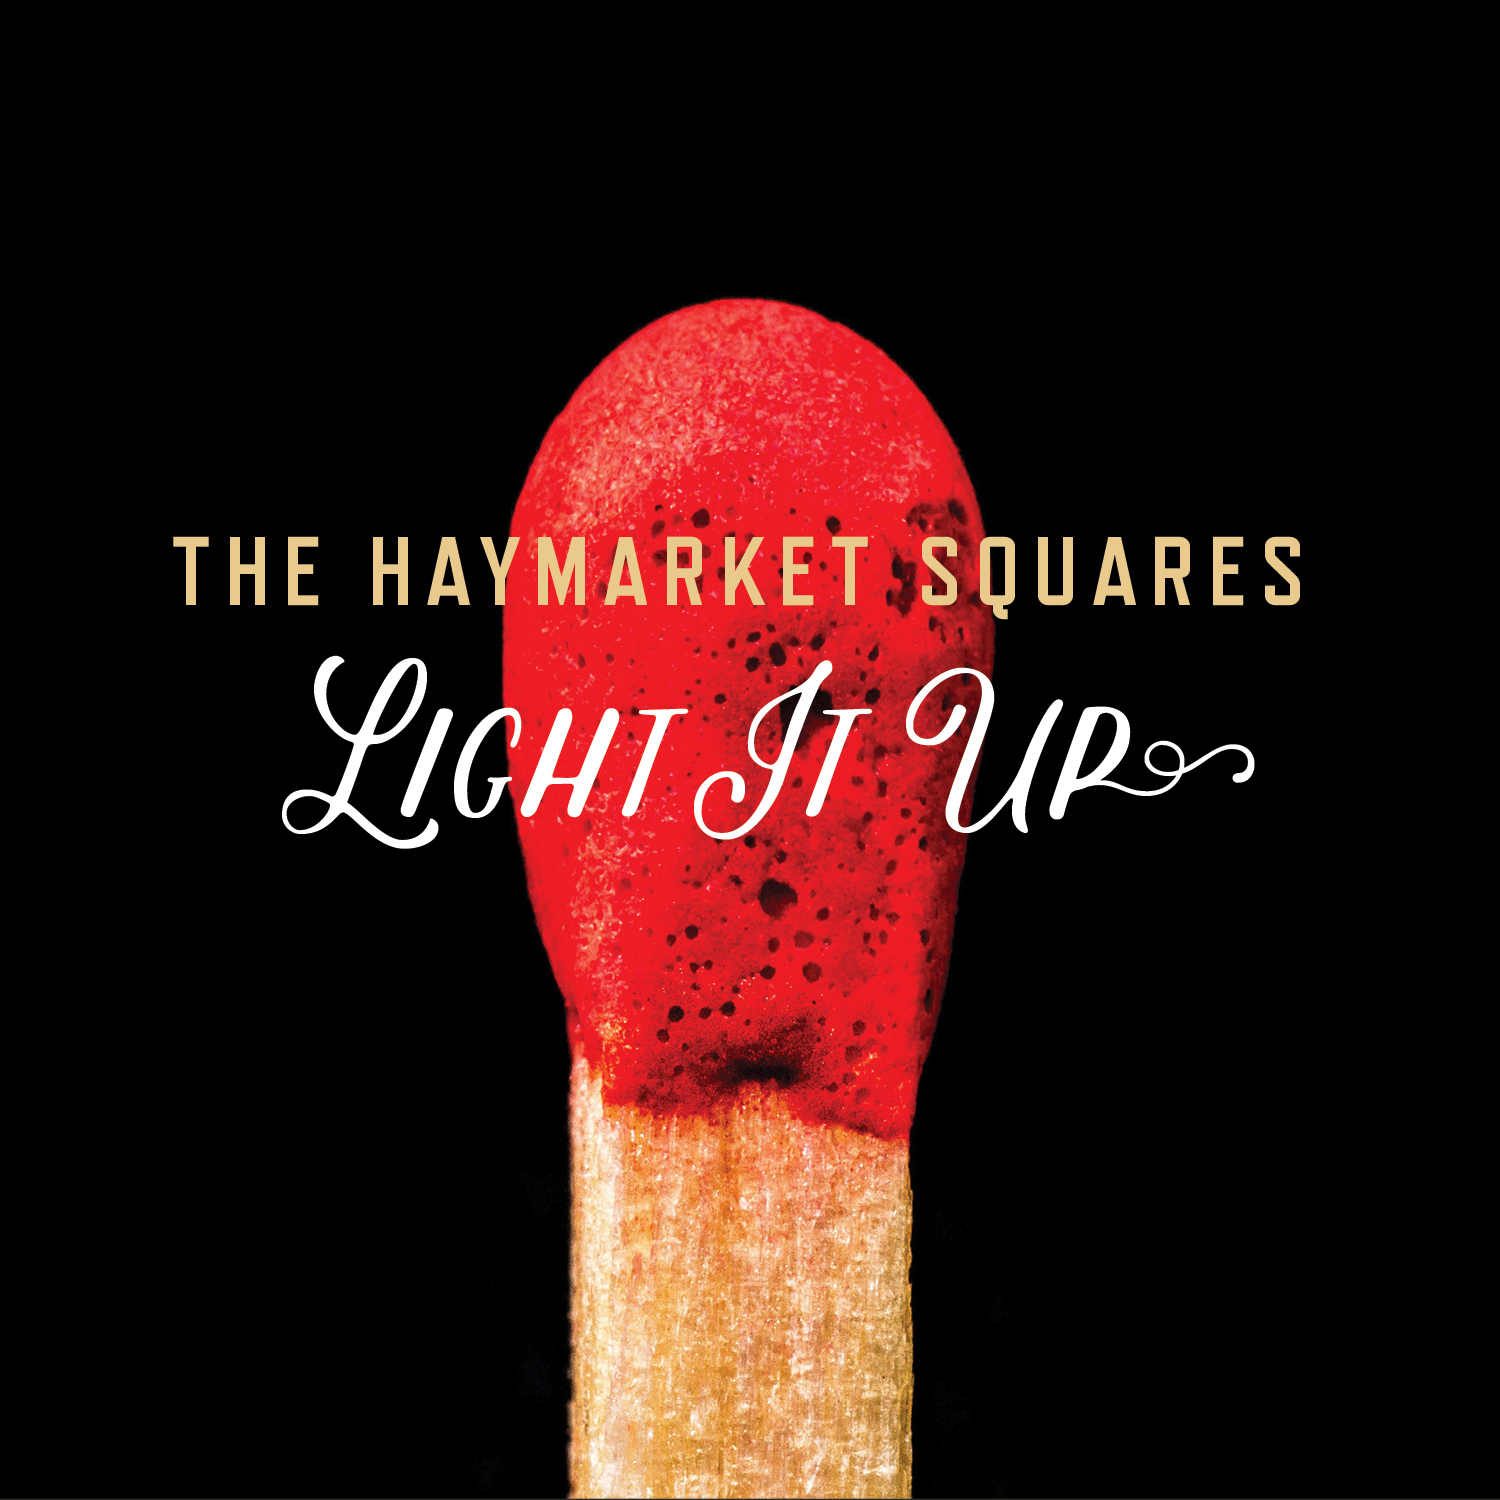 0f4849b6 The Haymarket Squares, however, deal primarily in punk-inspired bluegrass,  which makes a good deal of their music sound somber. But hey, we live in  serious ...